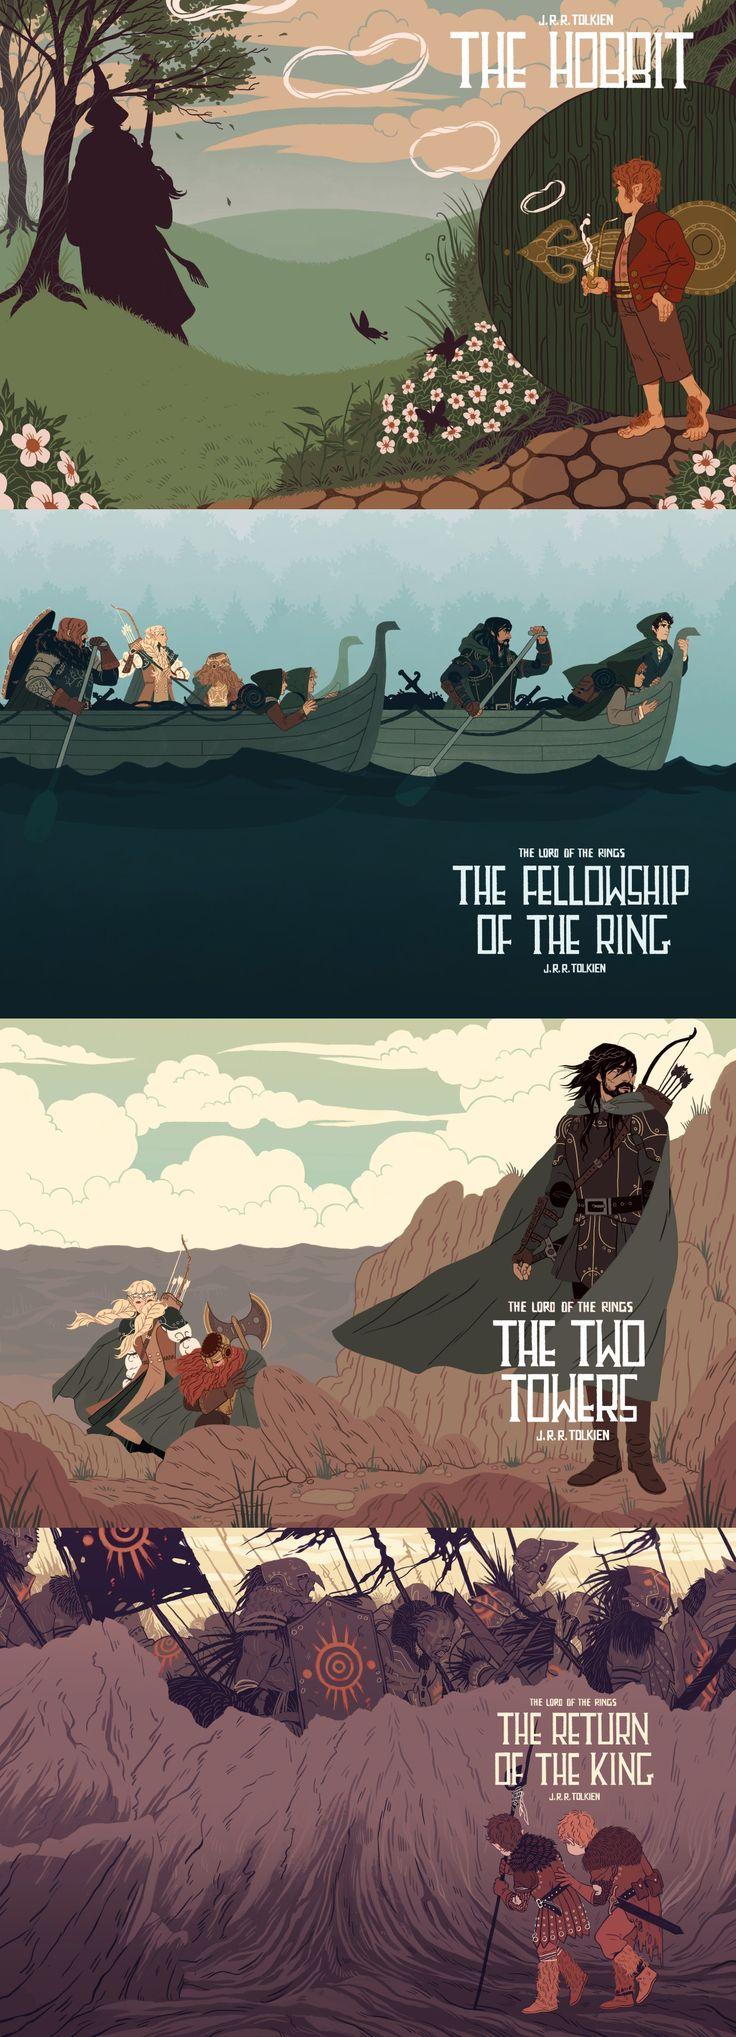 The Hobbit and The Lord of the Rings by Sara Kipin #lordoftherings #hobbit #fanart